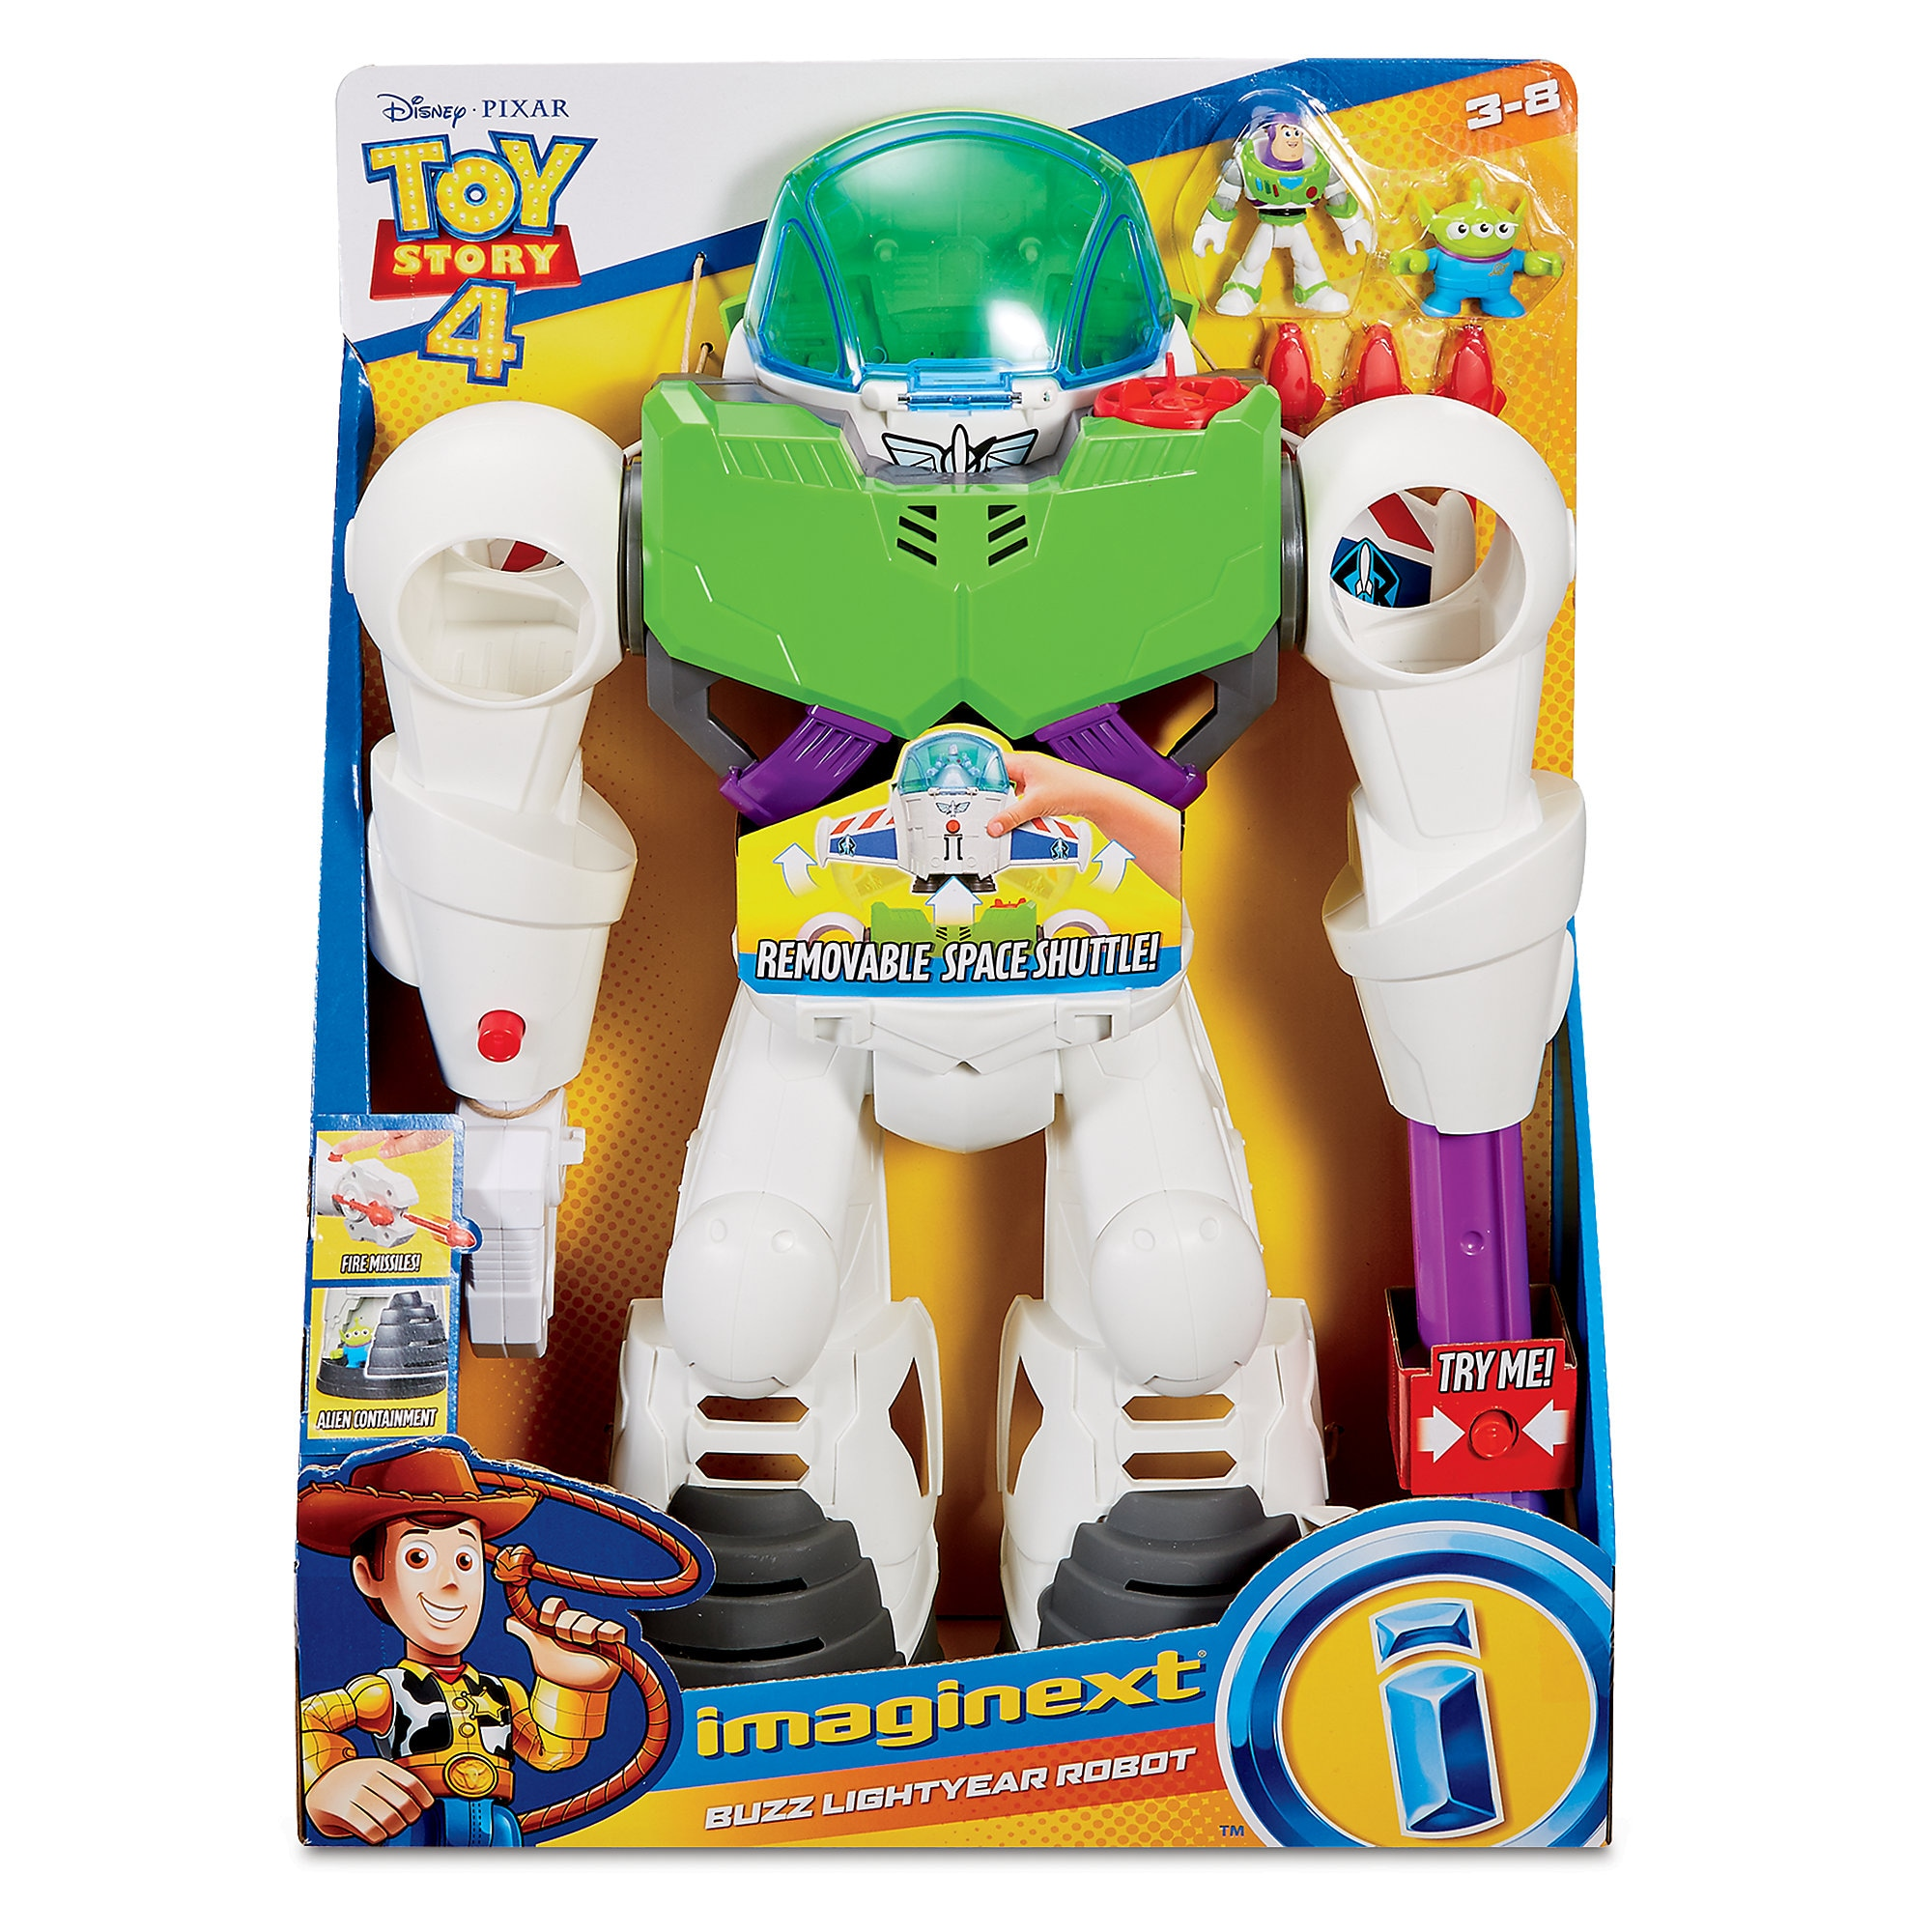 Buzz Lightyear Robot – Toy Story 4 is now out